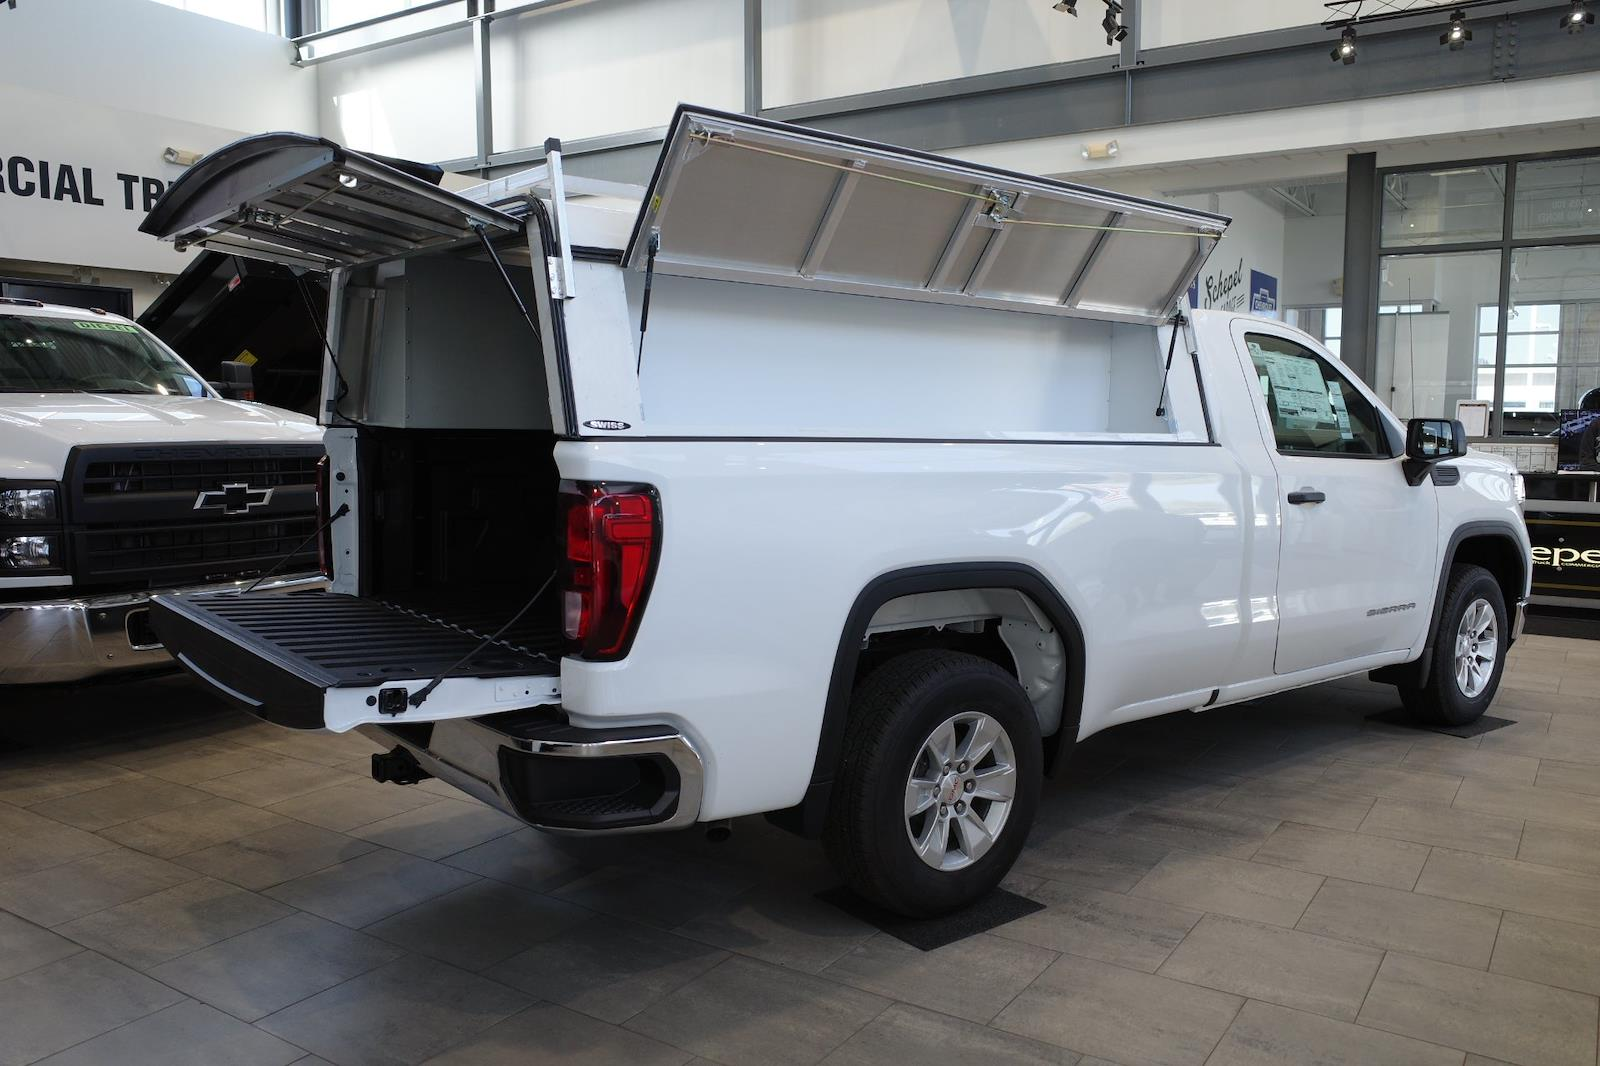 2021 GMC Sierra 1500 Regular Cab 4x2, Pickup #MT421 - photo 2